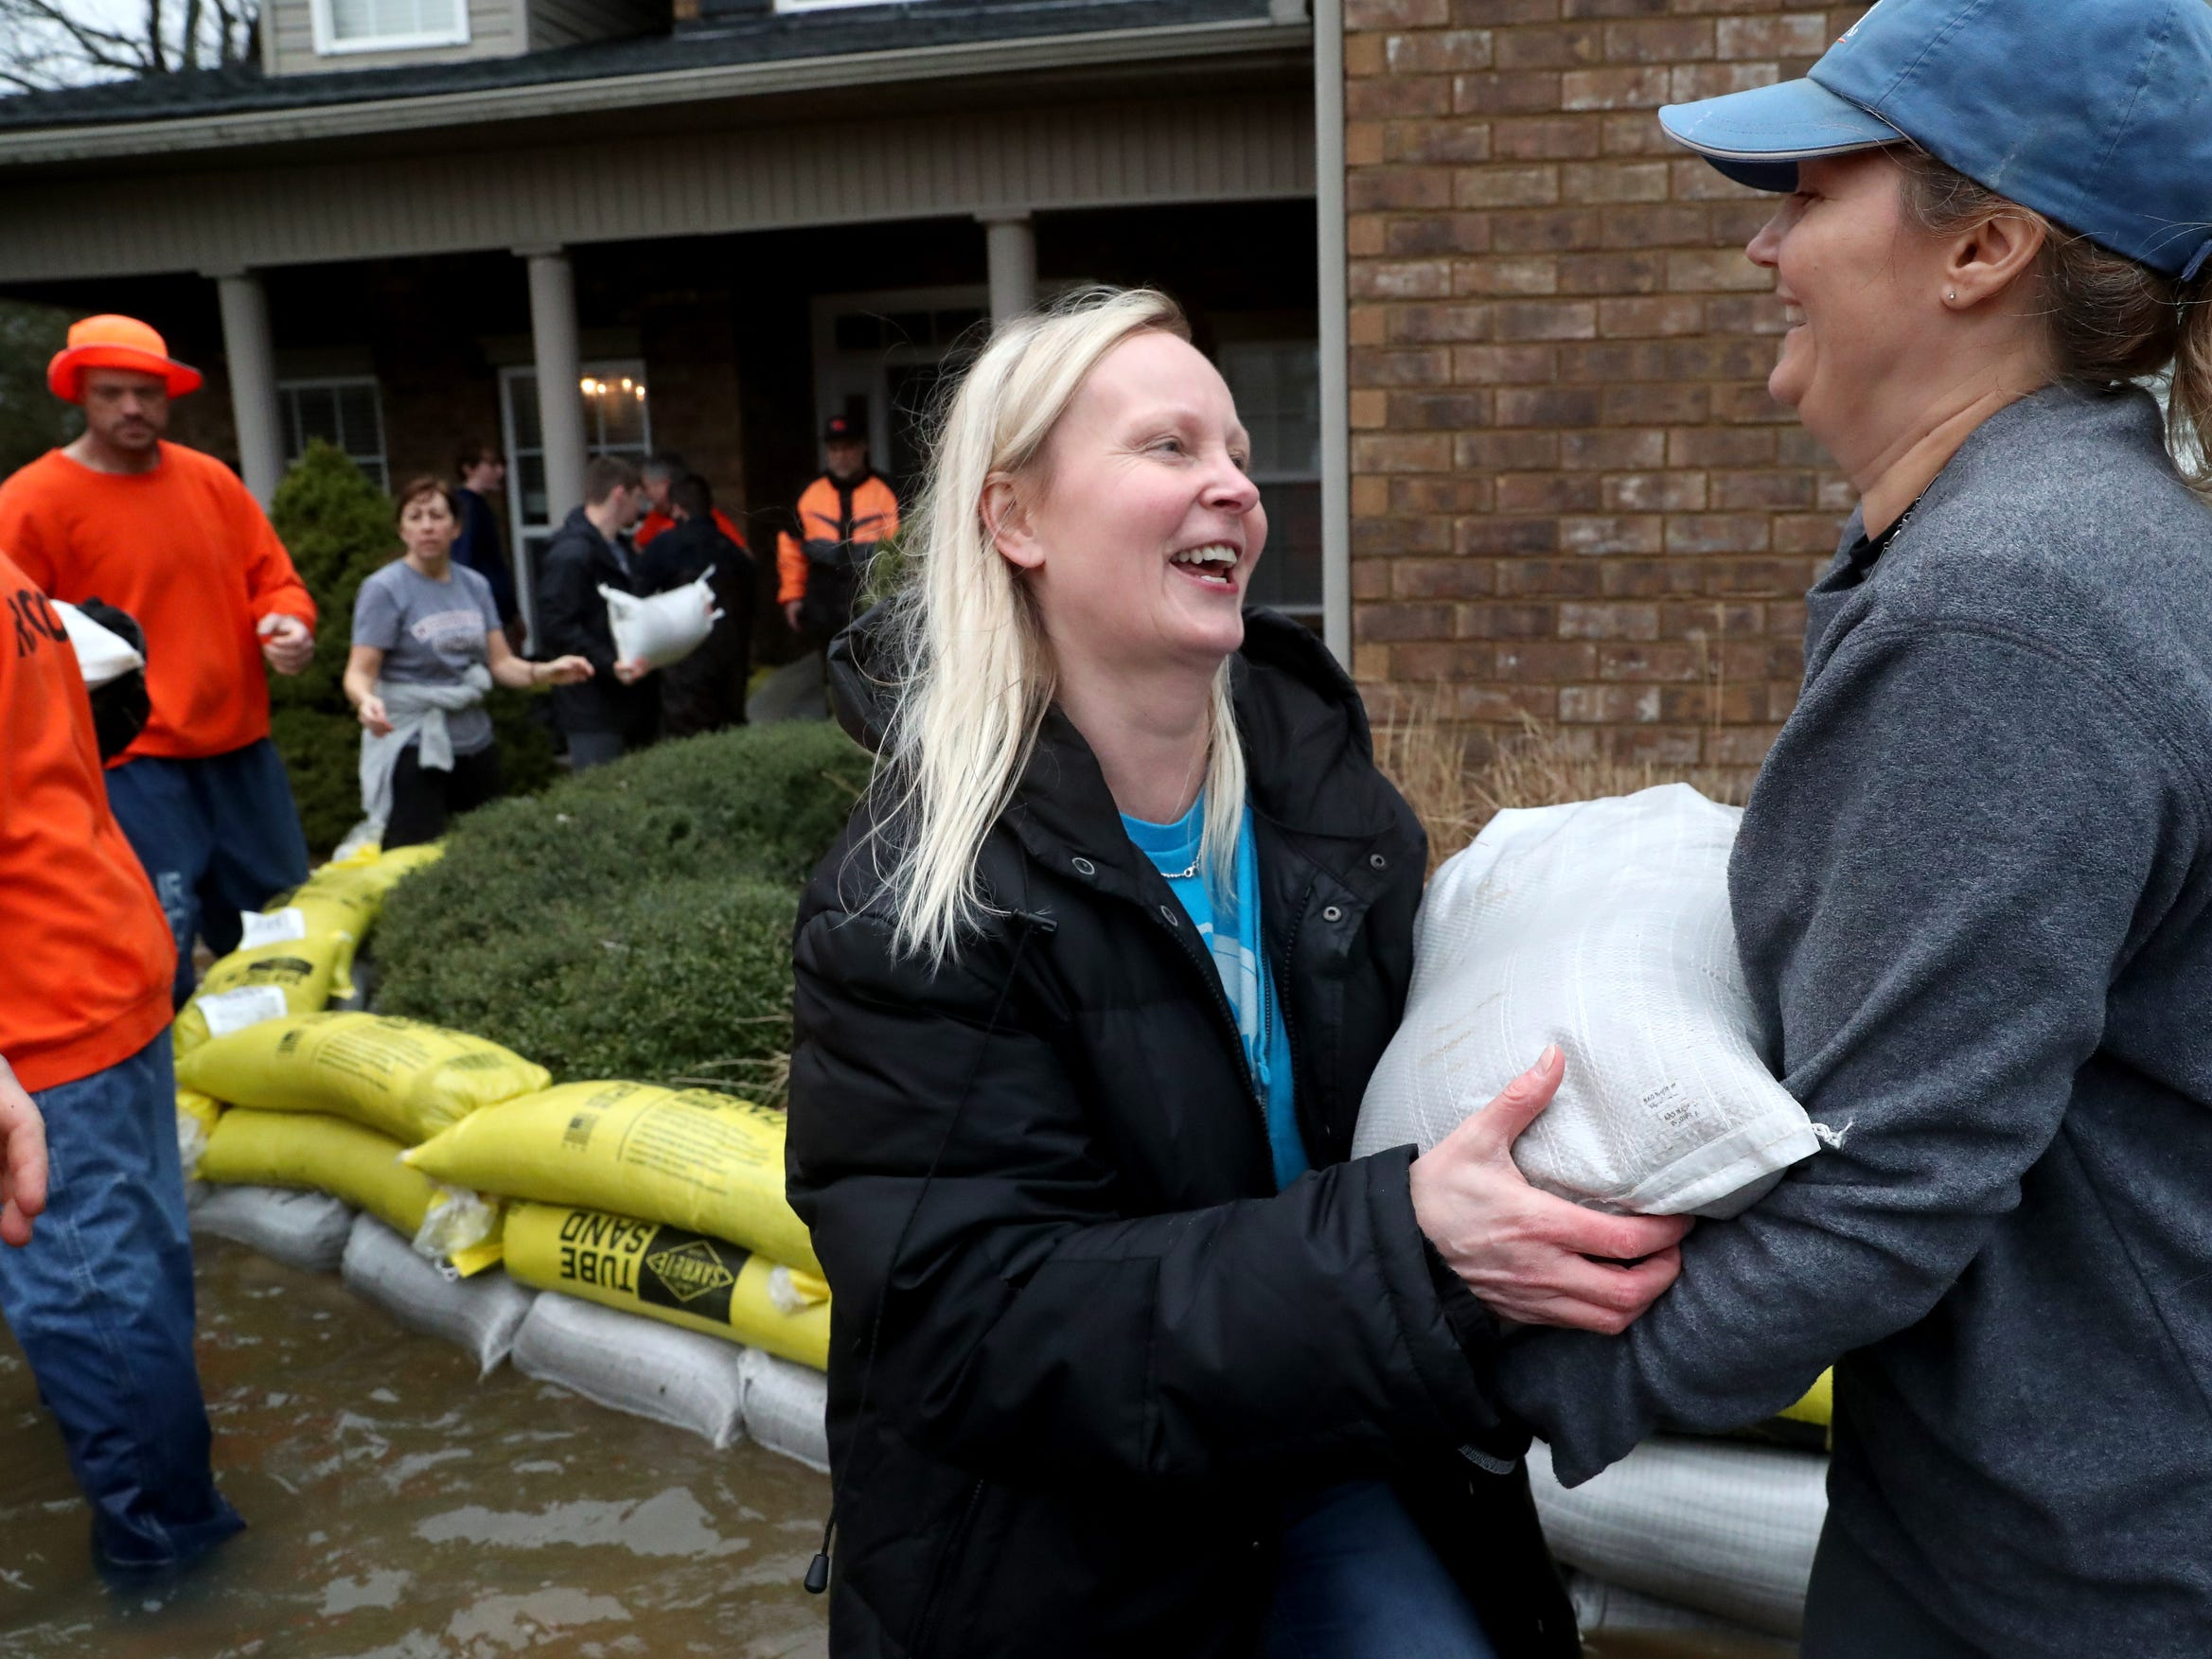 Katja Hedding, left,  and Teresa Garrison, right move sand bags in a line to place around a neighbor's home to keep it safe from flood waters on Steelson Way in Murfreesboro, on Saturday, Feb. 23, 2019.